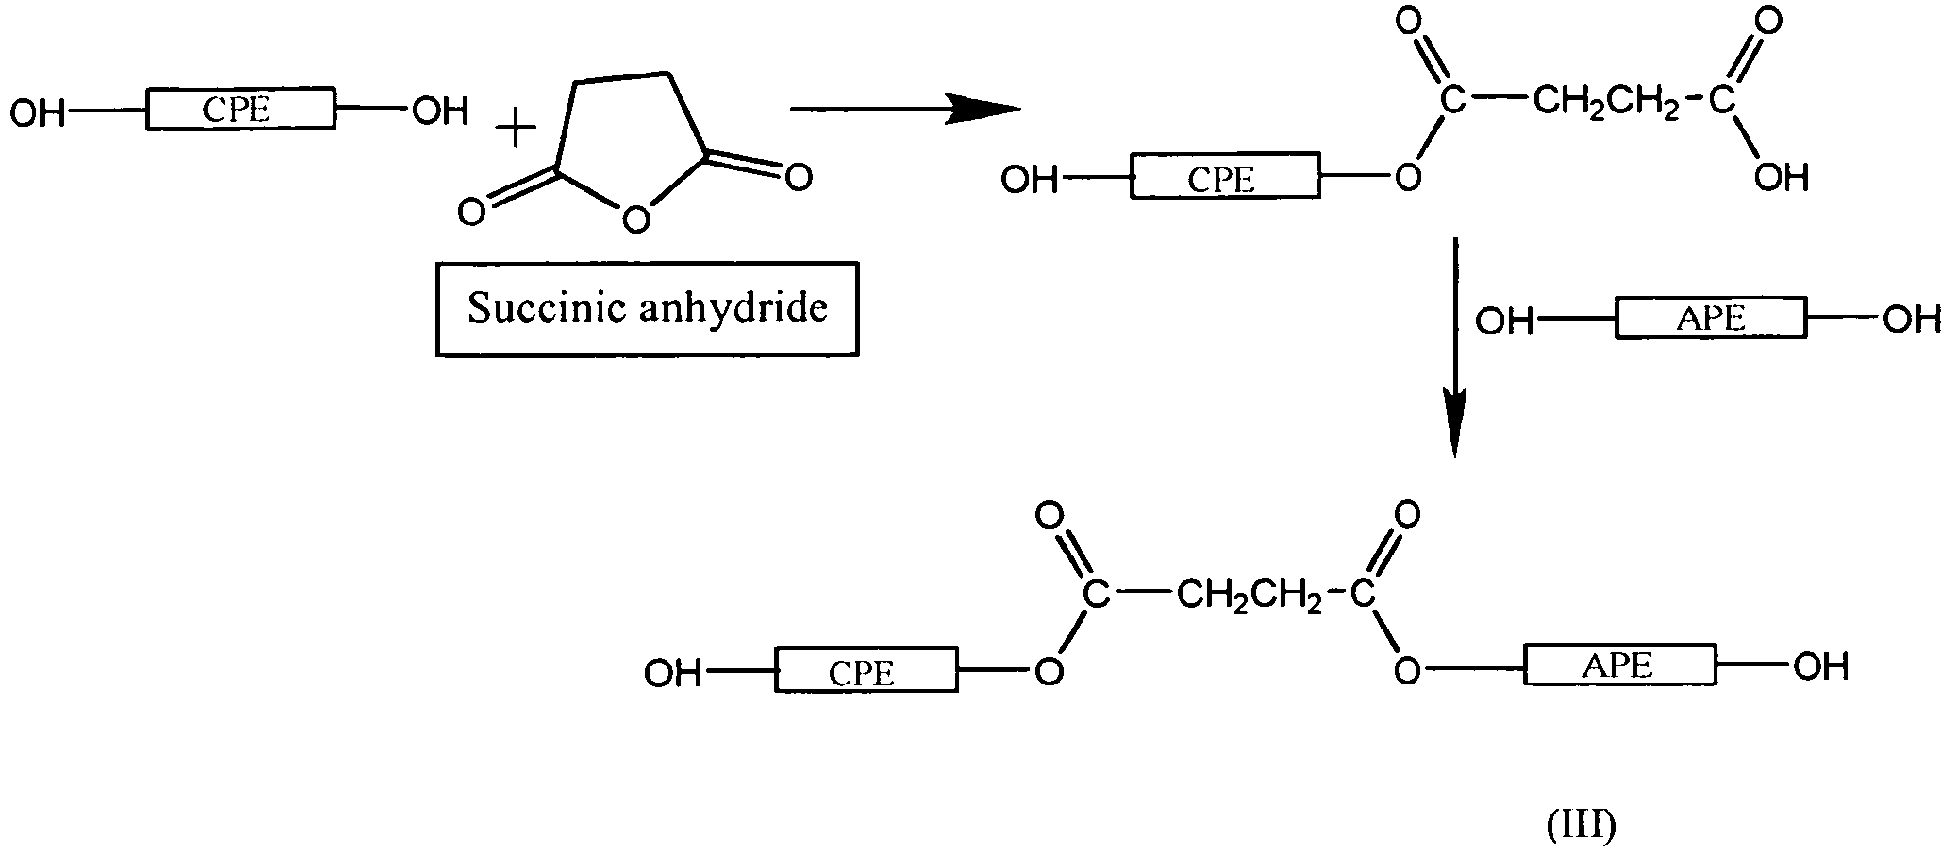 Synthesis of 910dihydroanthracene910αβsuccinic acid